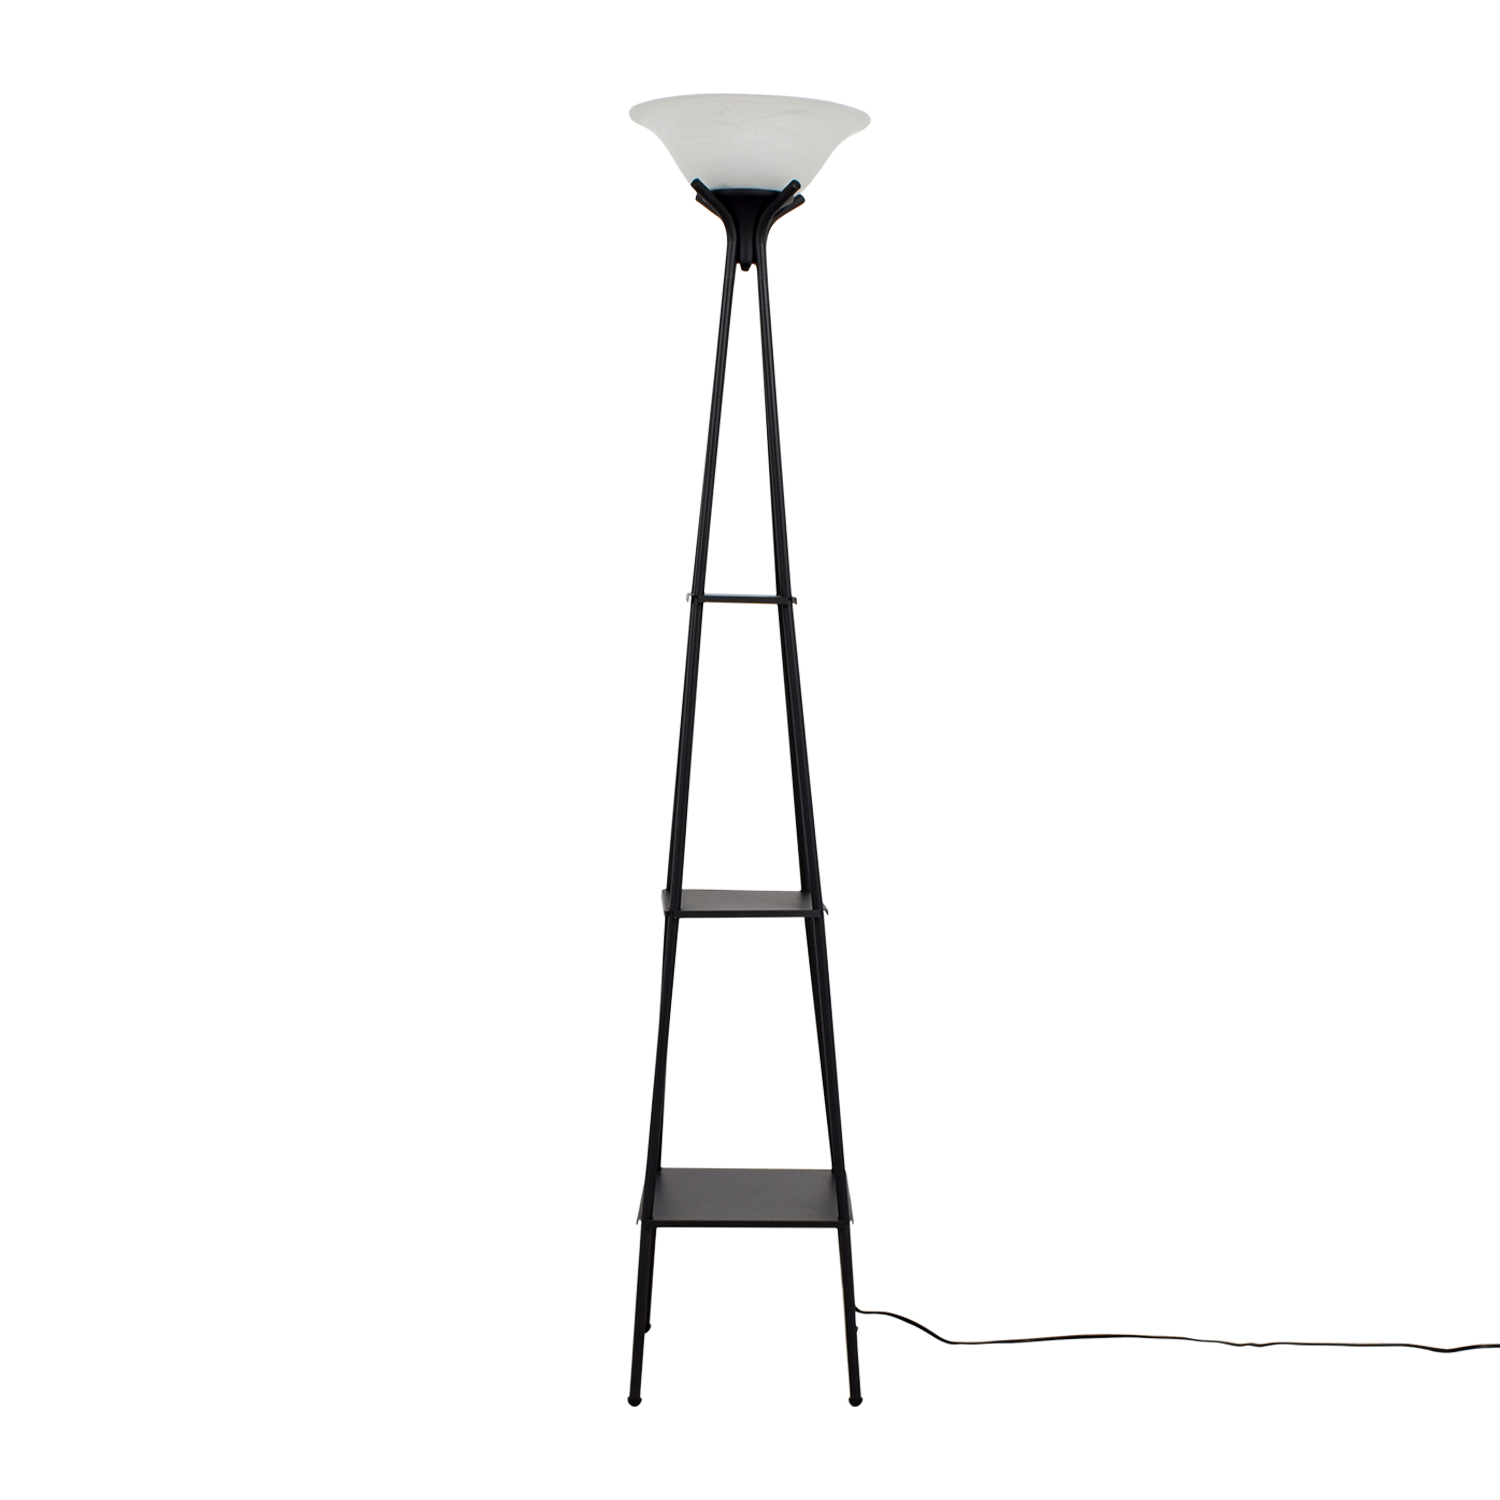 51 off walmart walmart tower floor lamp decor walmart walmart tower floor lamp black aloadofball Images